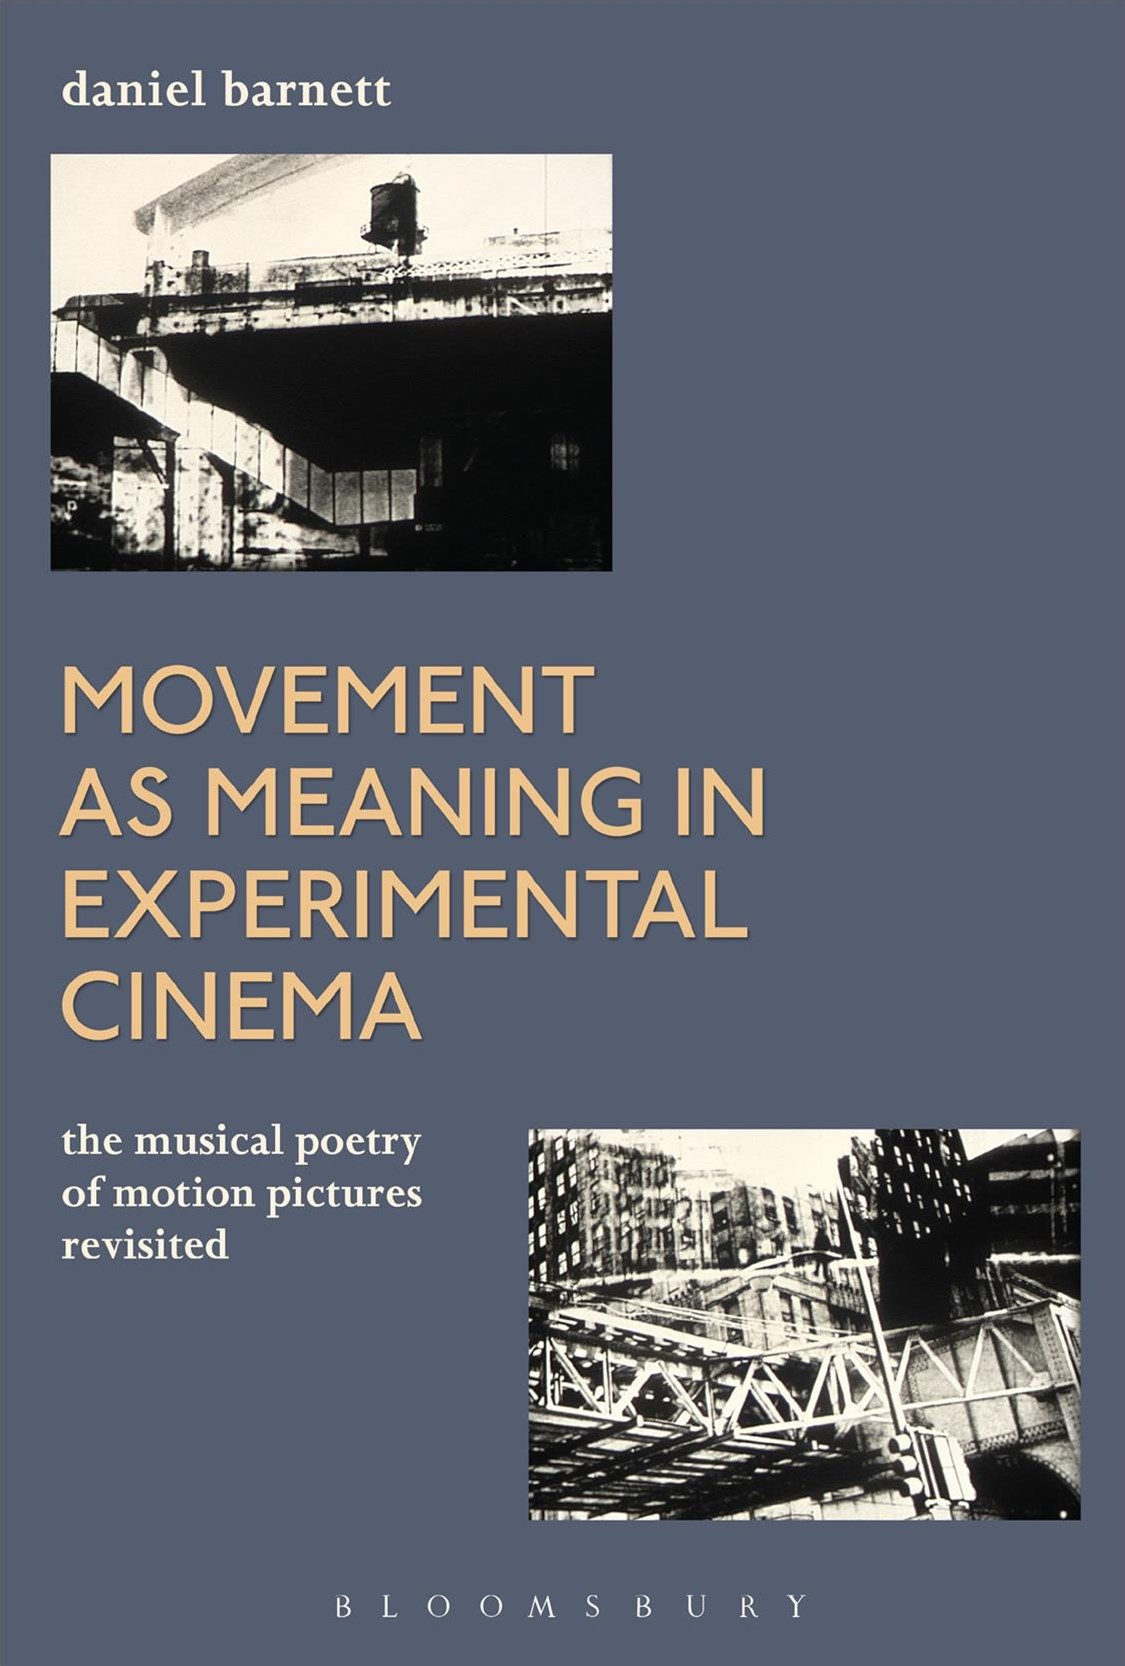 Movement as Meaning in Experimental Cinema